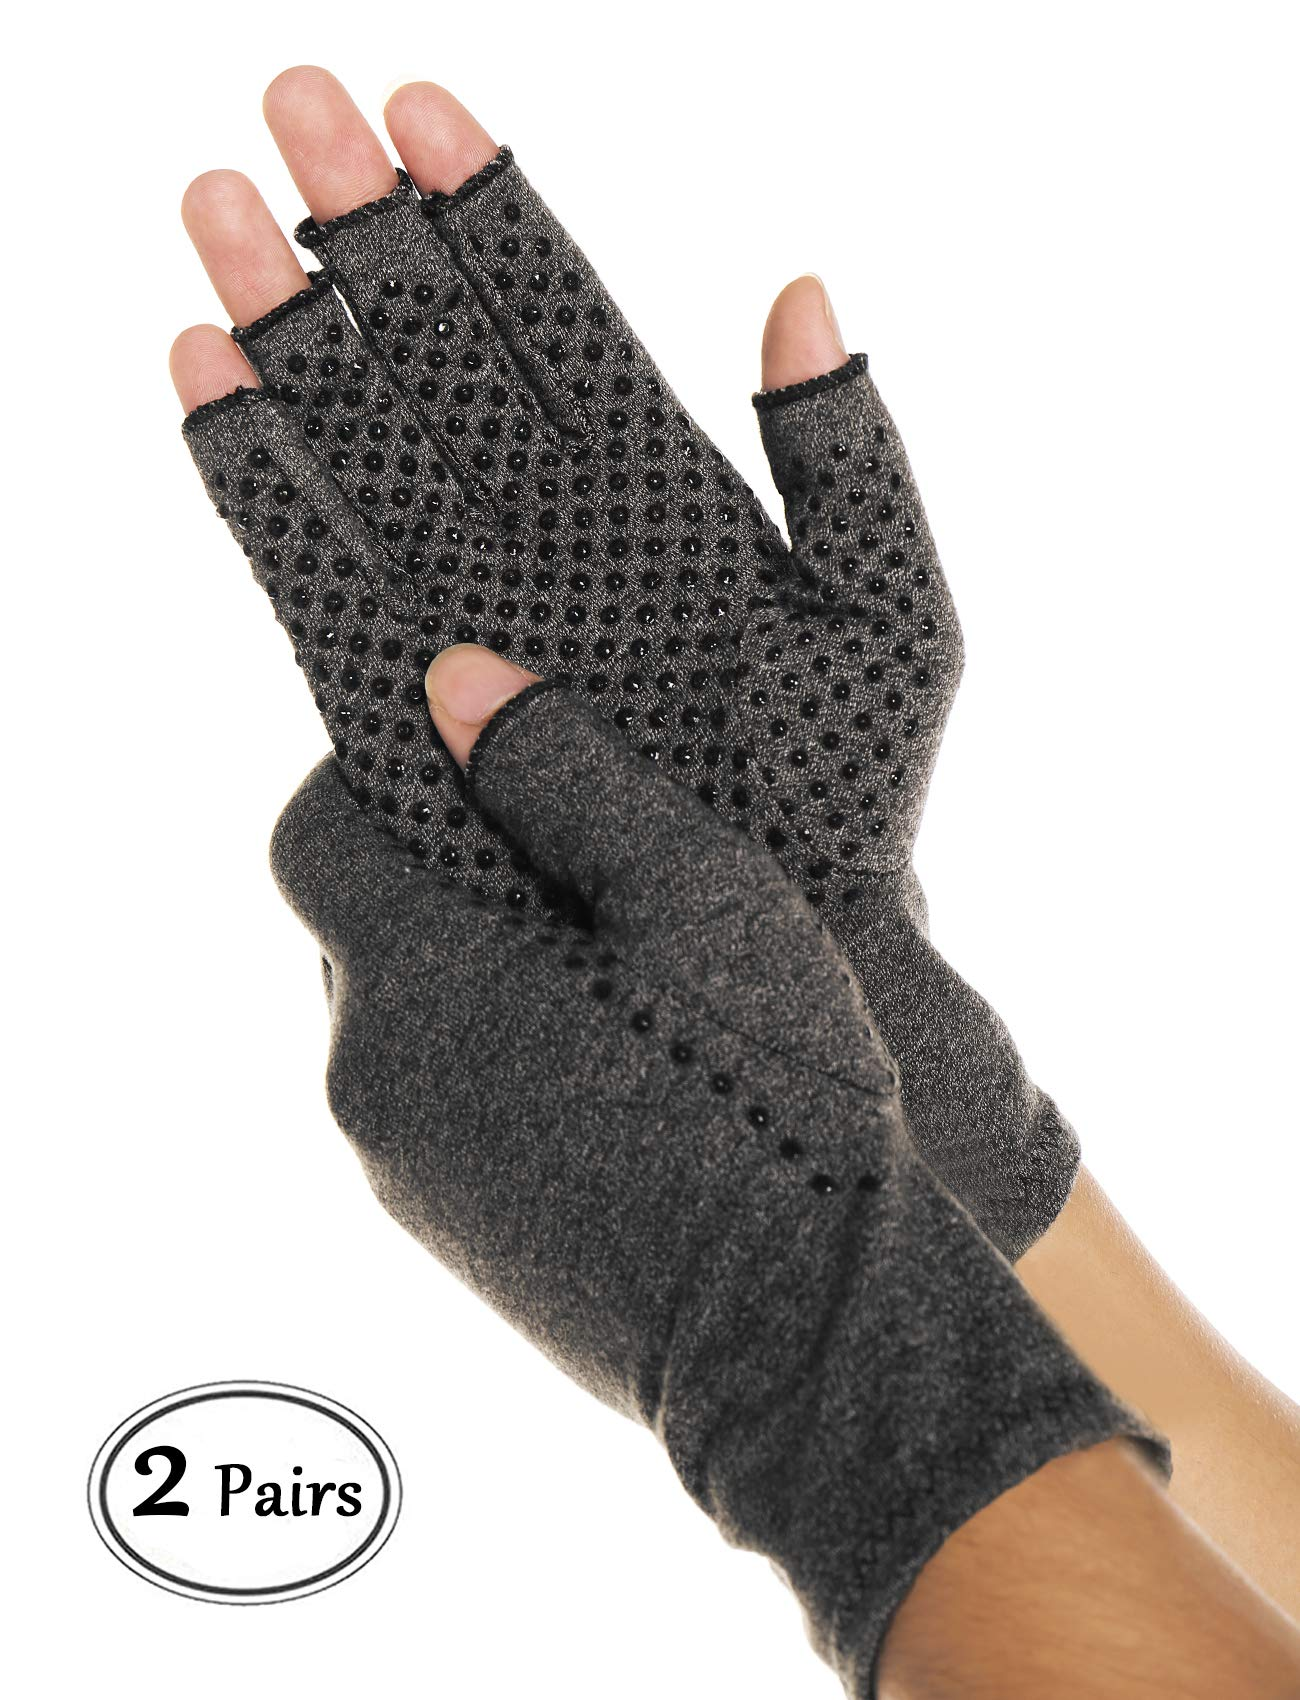 CFR Compression Arthritis Gloves Hand Gloves for Carpal Tunnel Rheumatoid Osteoarthritis Joint Pain Relief - Open Finger Non-Slip Two Pairs,S UPS Post